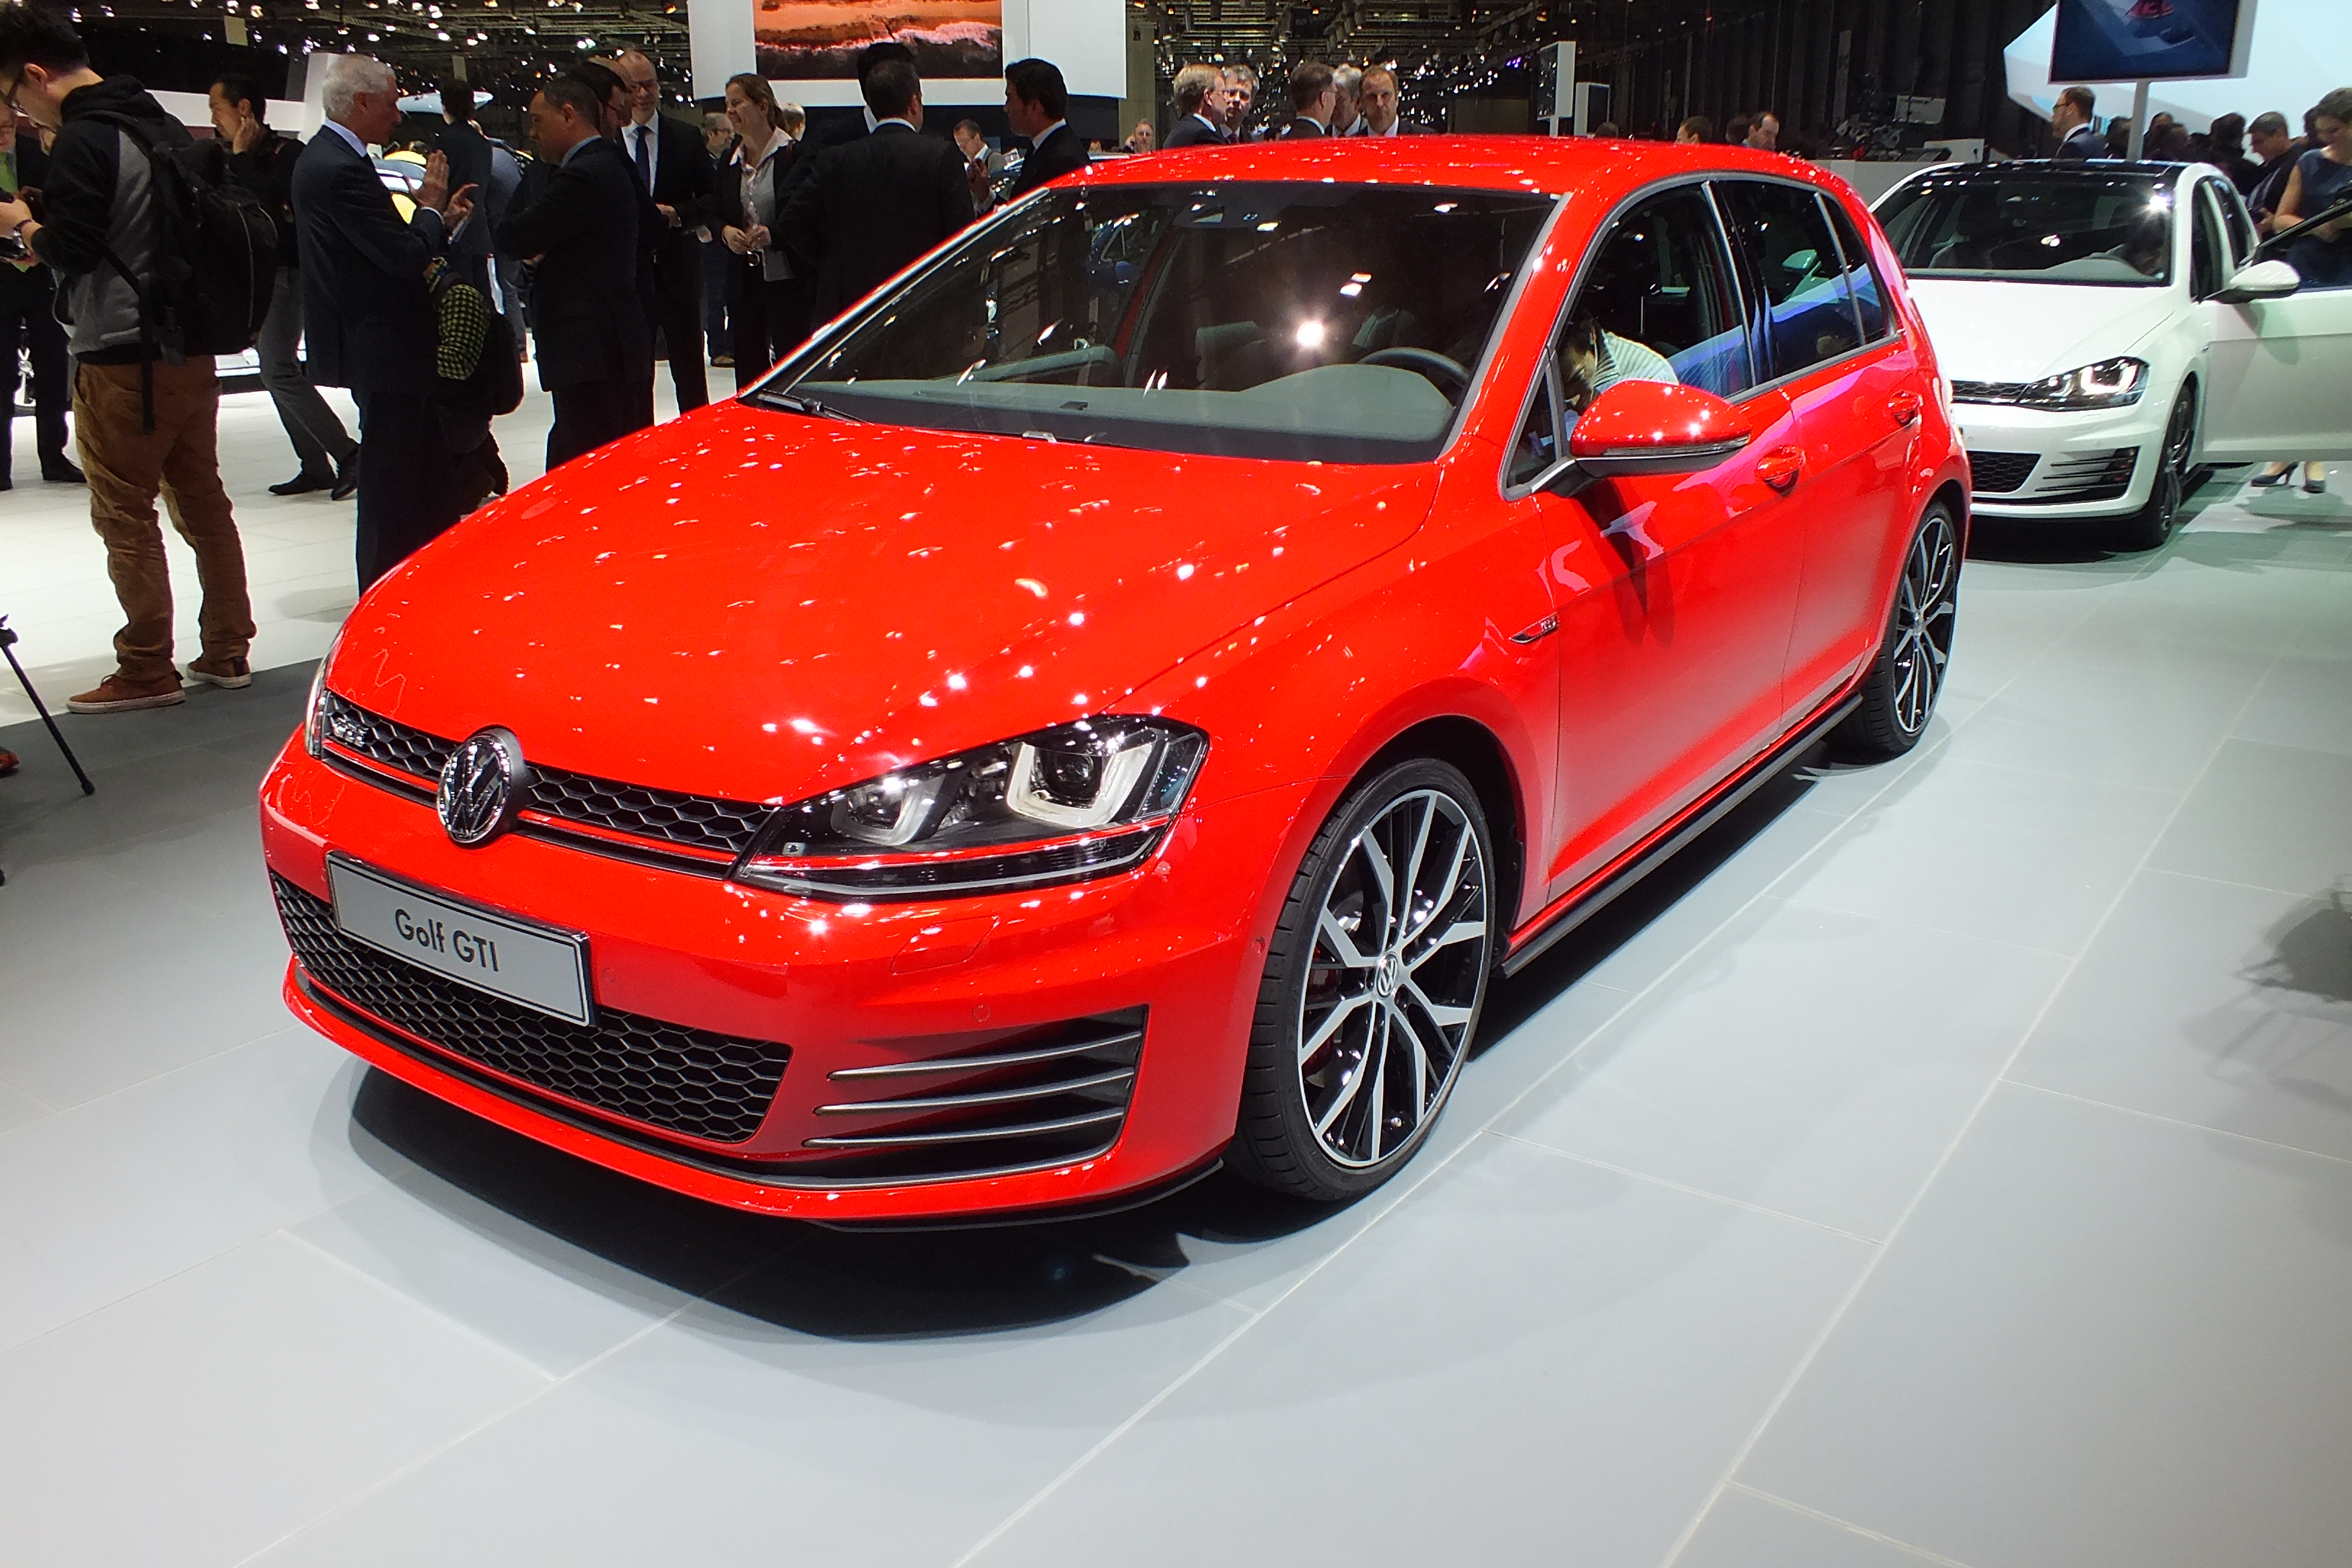 salon de gen ve 2013 golf gti 7 dark cars wallpapers